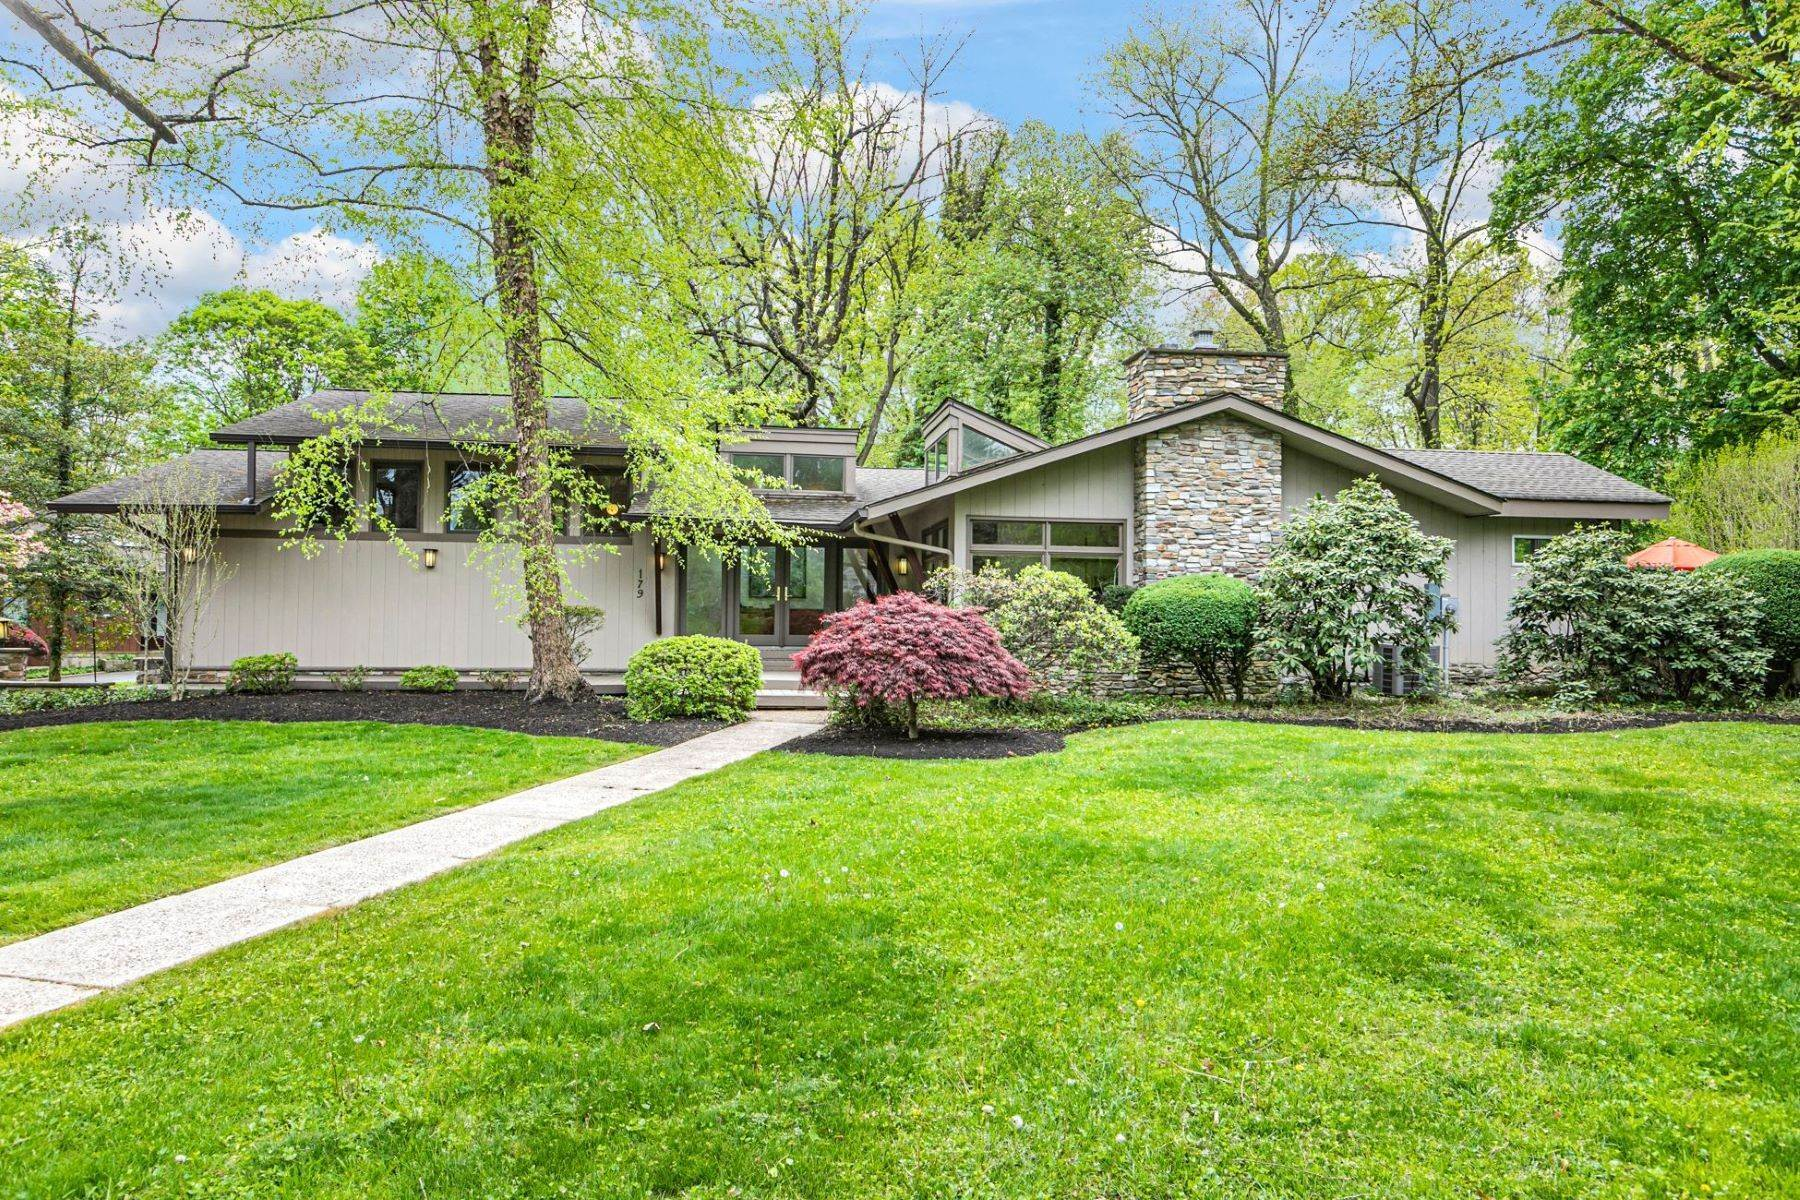 Single Family Homes for Sale at California Dreamin' In Princeton's Riverside 179 Longview Drive, Princeton, New Jersey 08540 United States